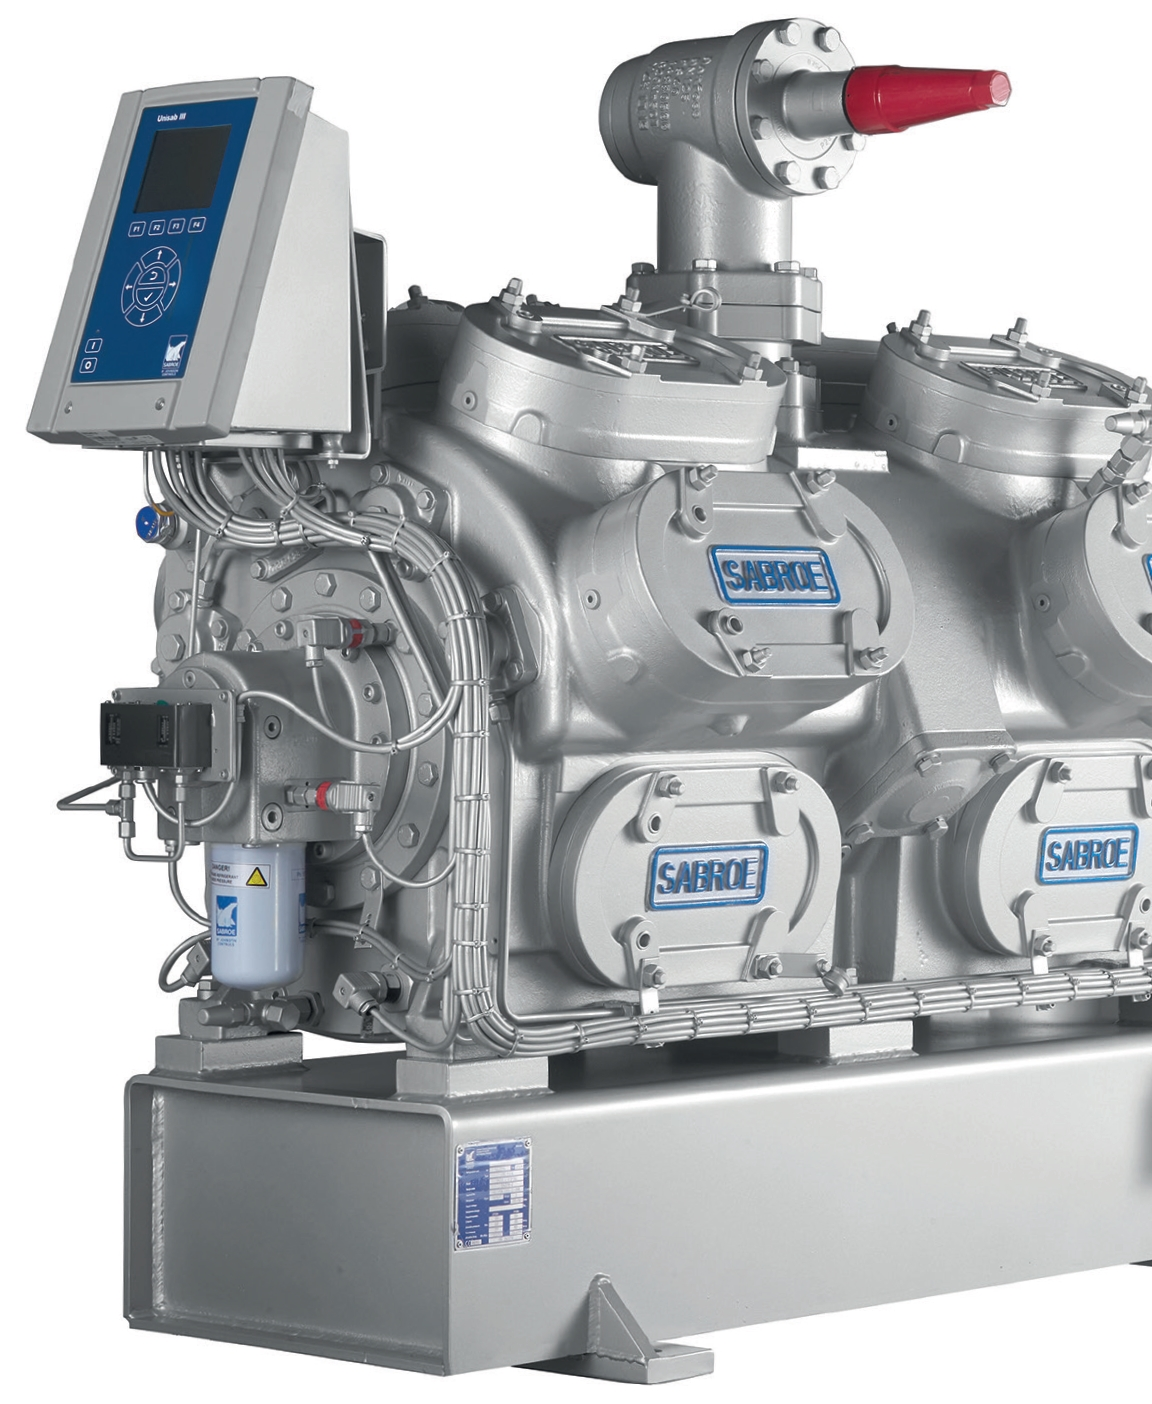 Johnson Controls launches its SABROE SMC Mk 5 reciprocating compressor in South Africa